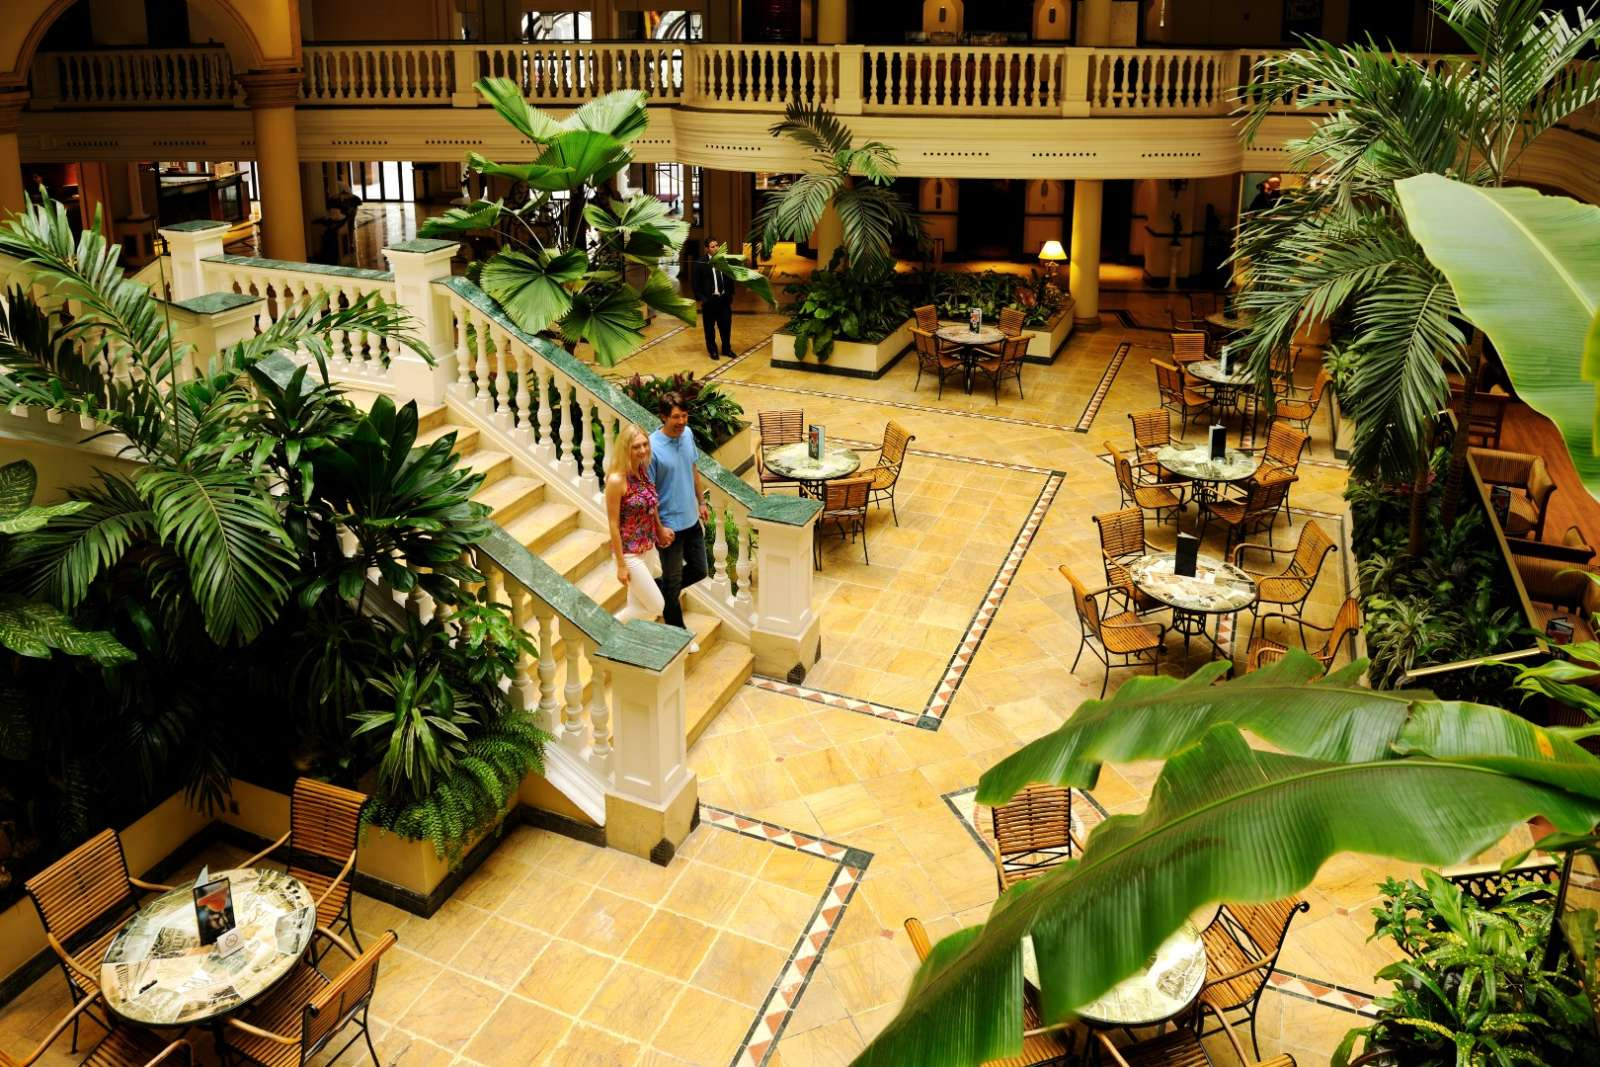 Lobby at the Parque Central hotel in Havana, Cuba